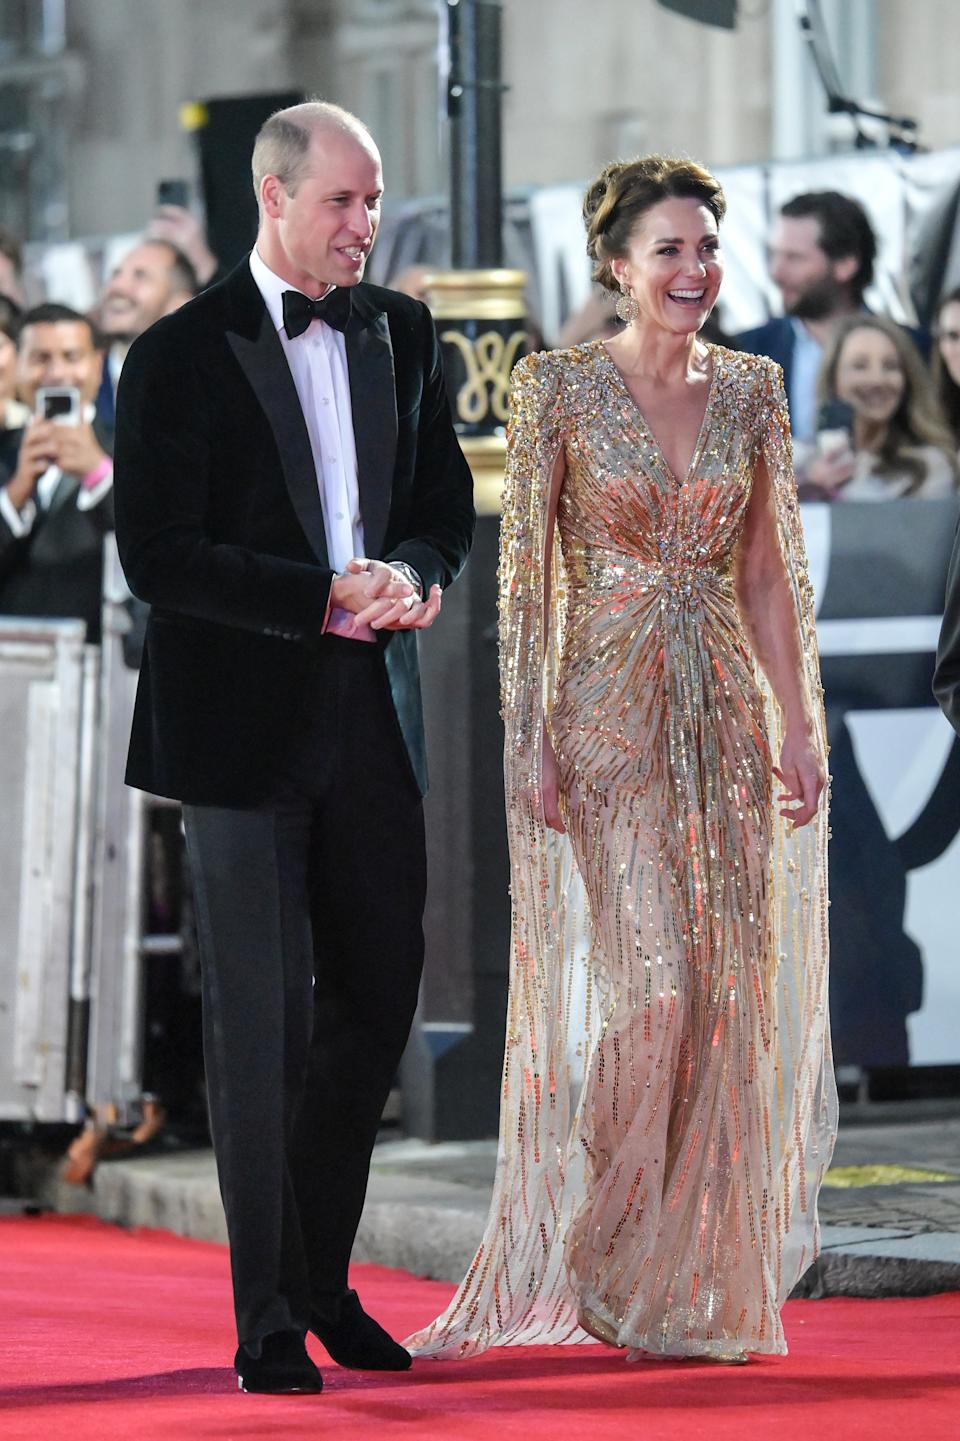 Kate Middleton and Prince William at the James Bond premiere